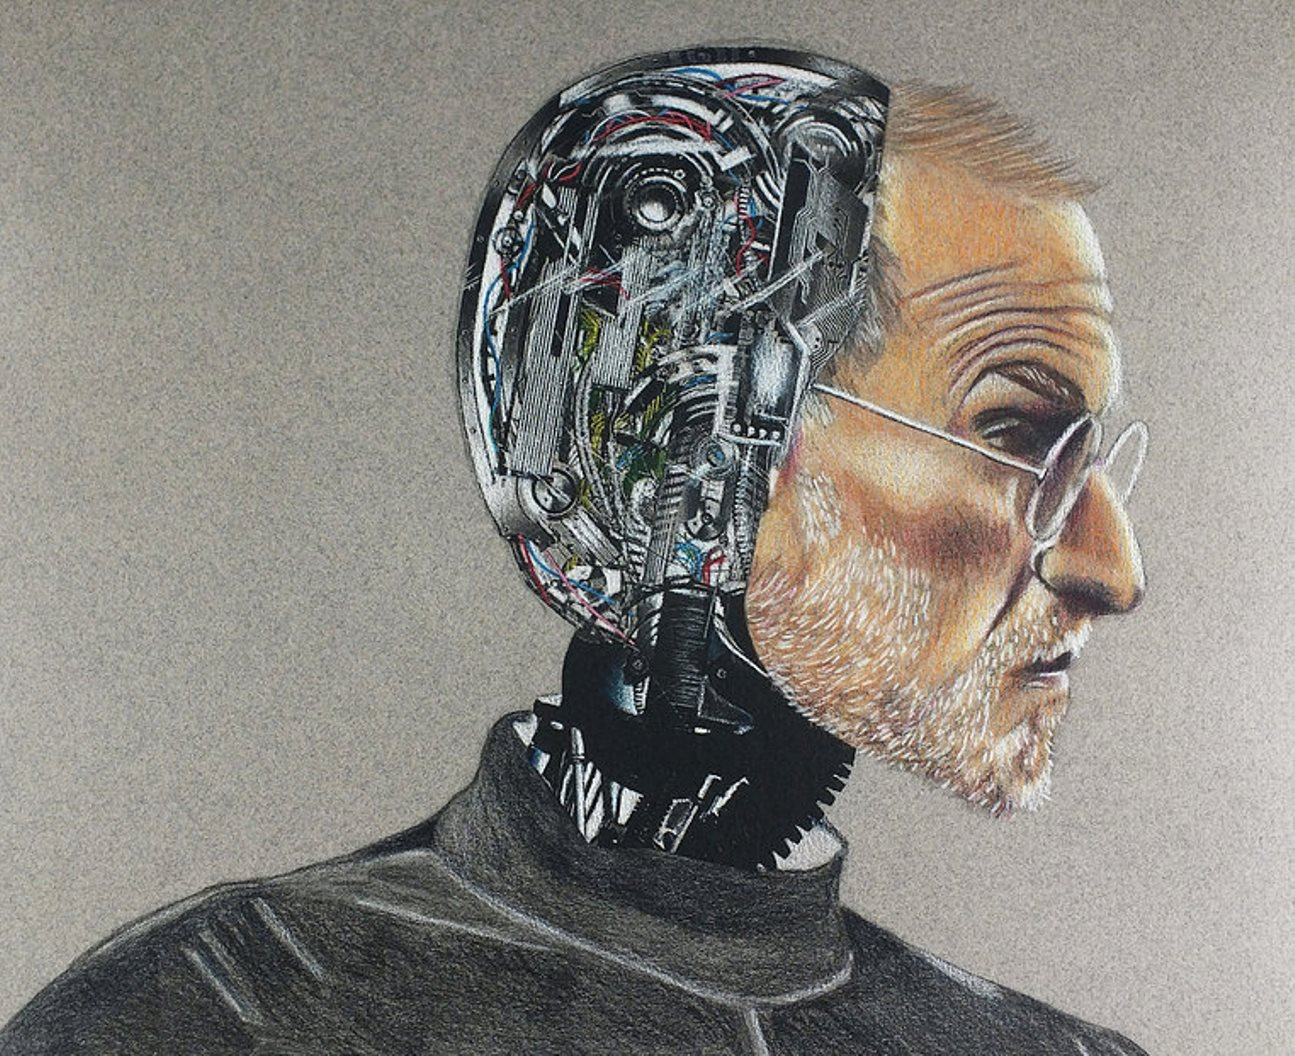 Colored pencil drawing of Steve Jobs as a robot on Canson paper